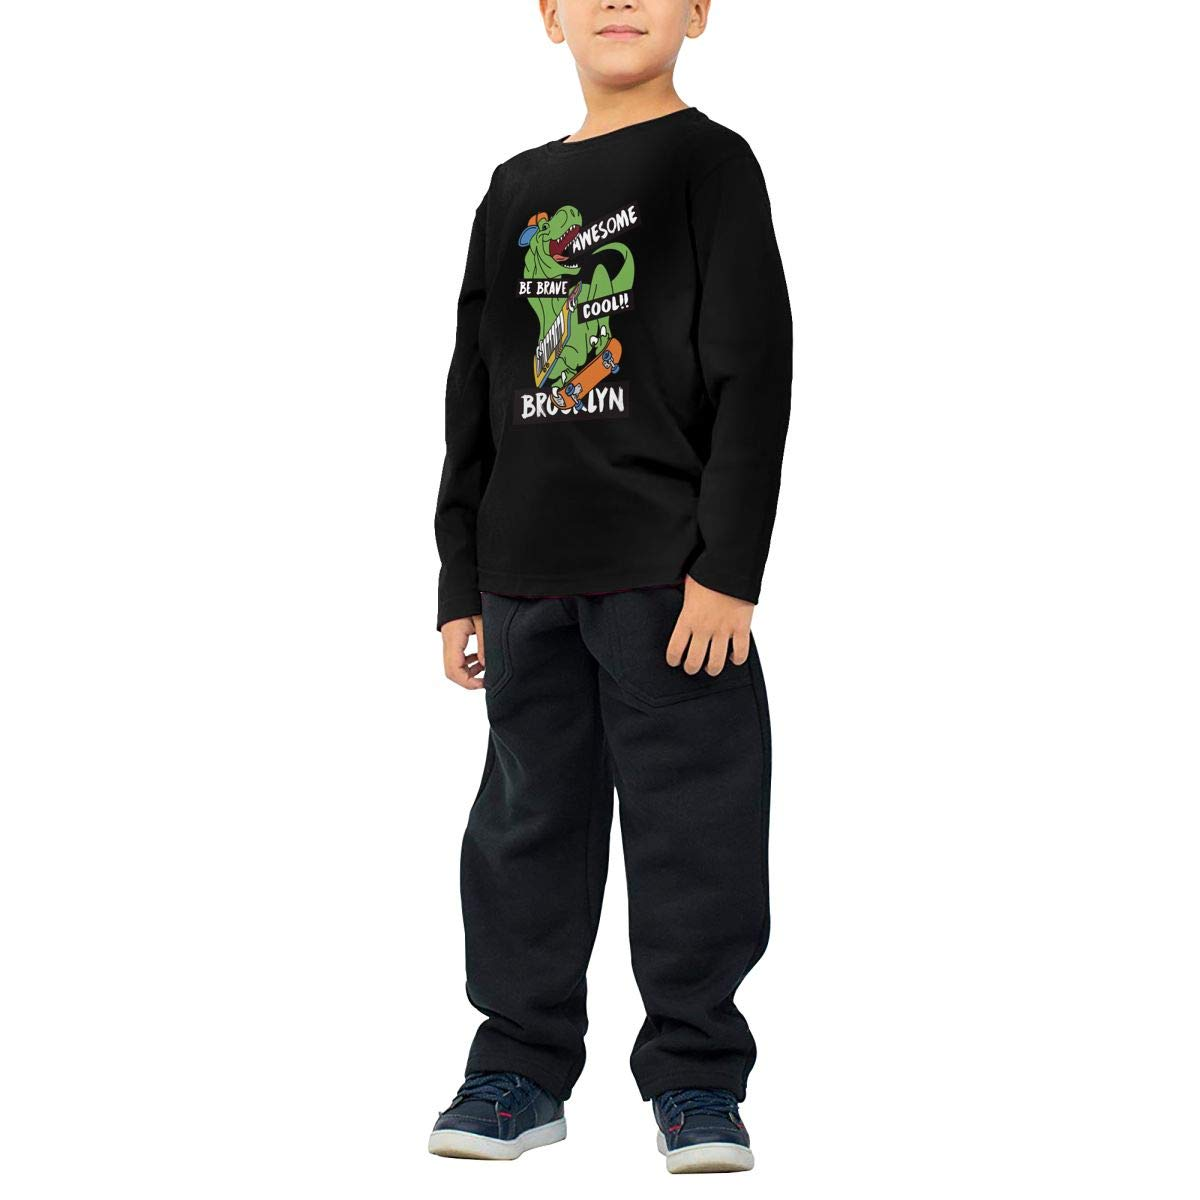 Boys Girls HIGASQ Unisex Baby Awesome Cool Dinosaur Toddlers Long Sleeve Round Neck Casual Pullover T Shirt for Kid